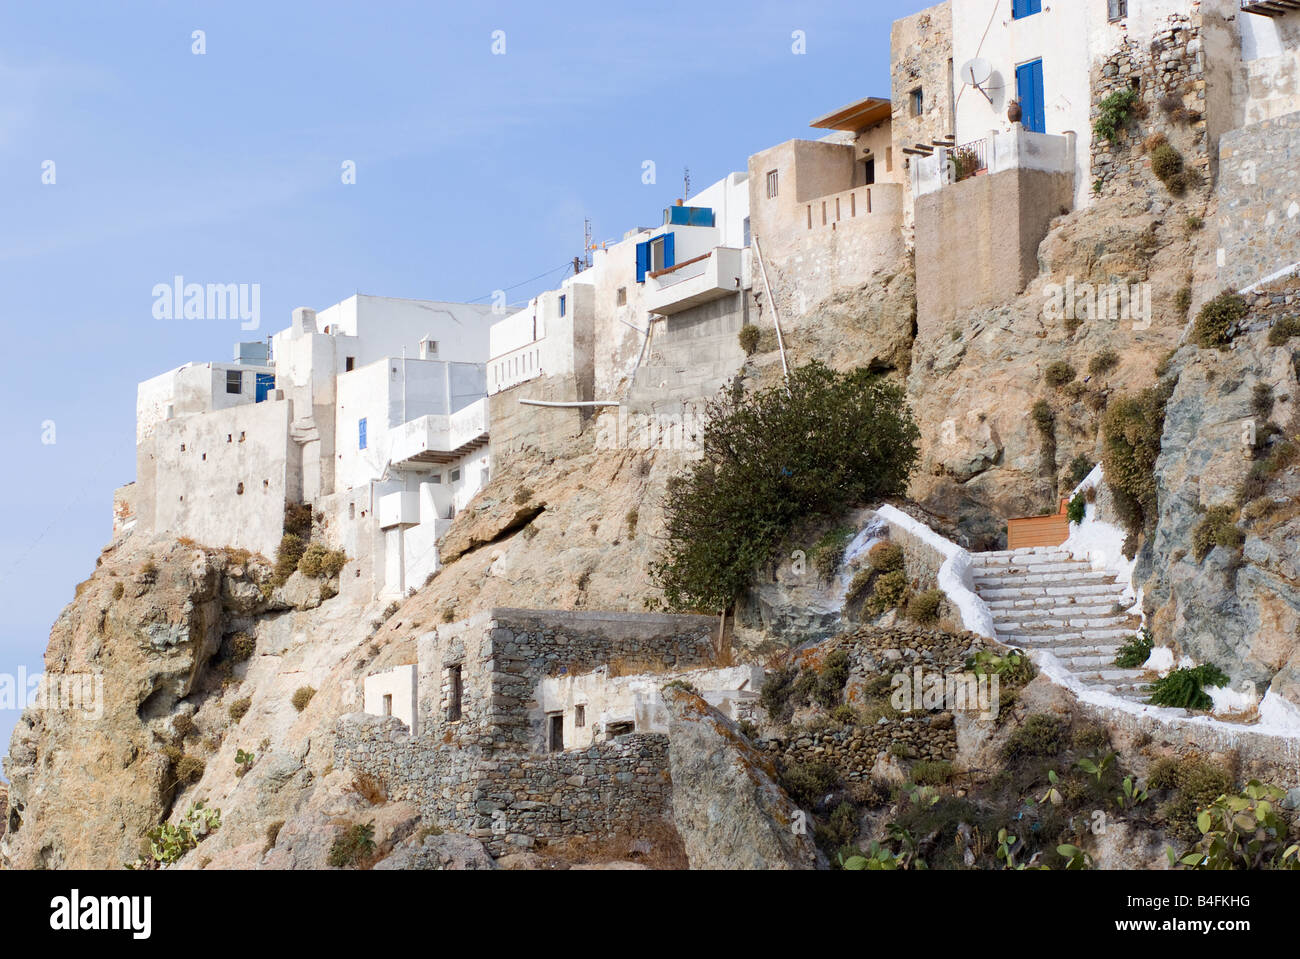 whitewashed chora serifos island greece stockfotos whitewashed chora serifos island greece. Black Bedroom Furniture Sets. Home Design Ideas